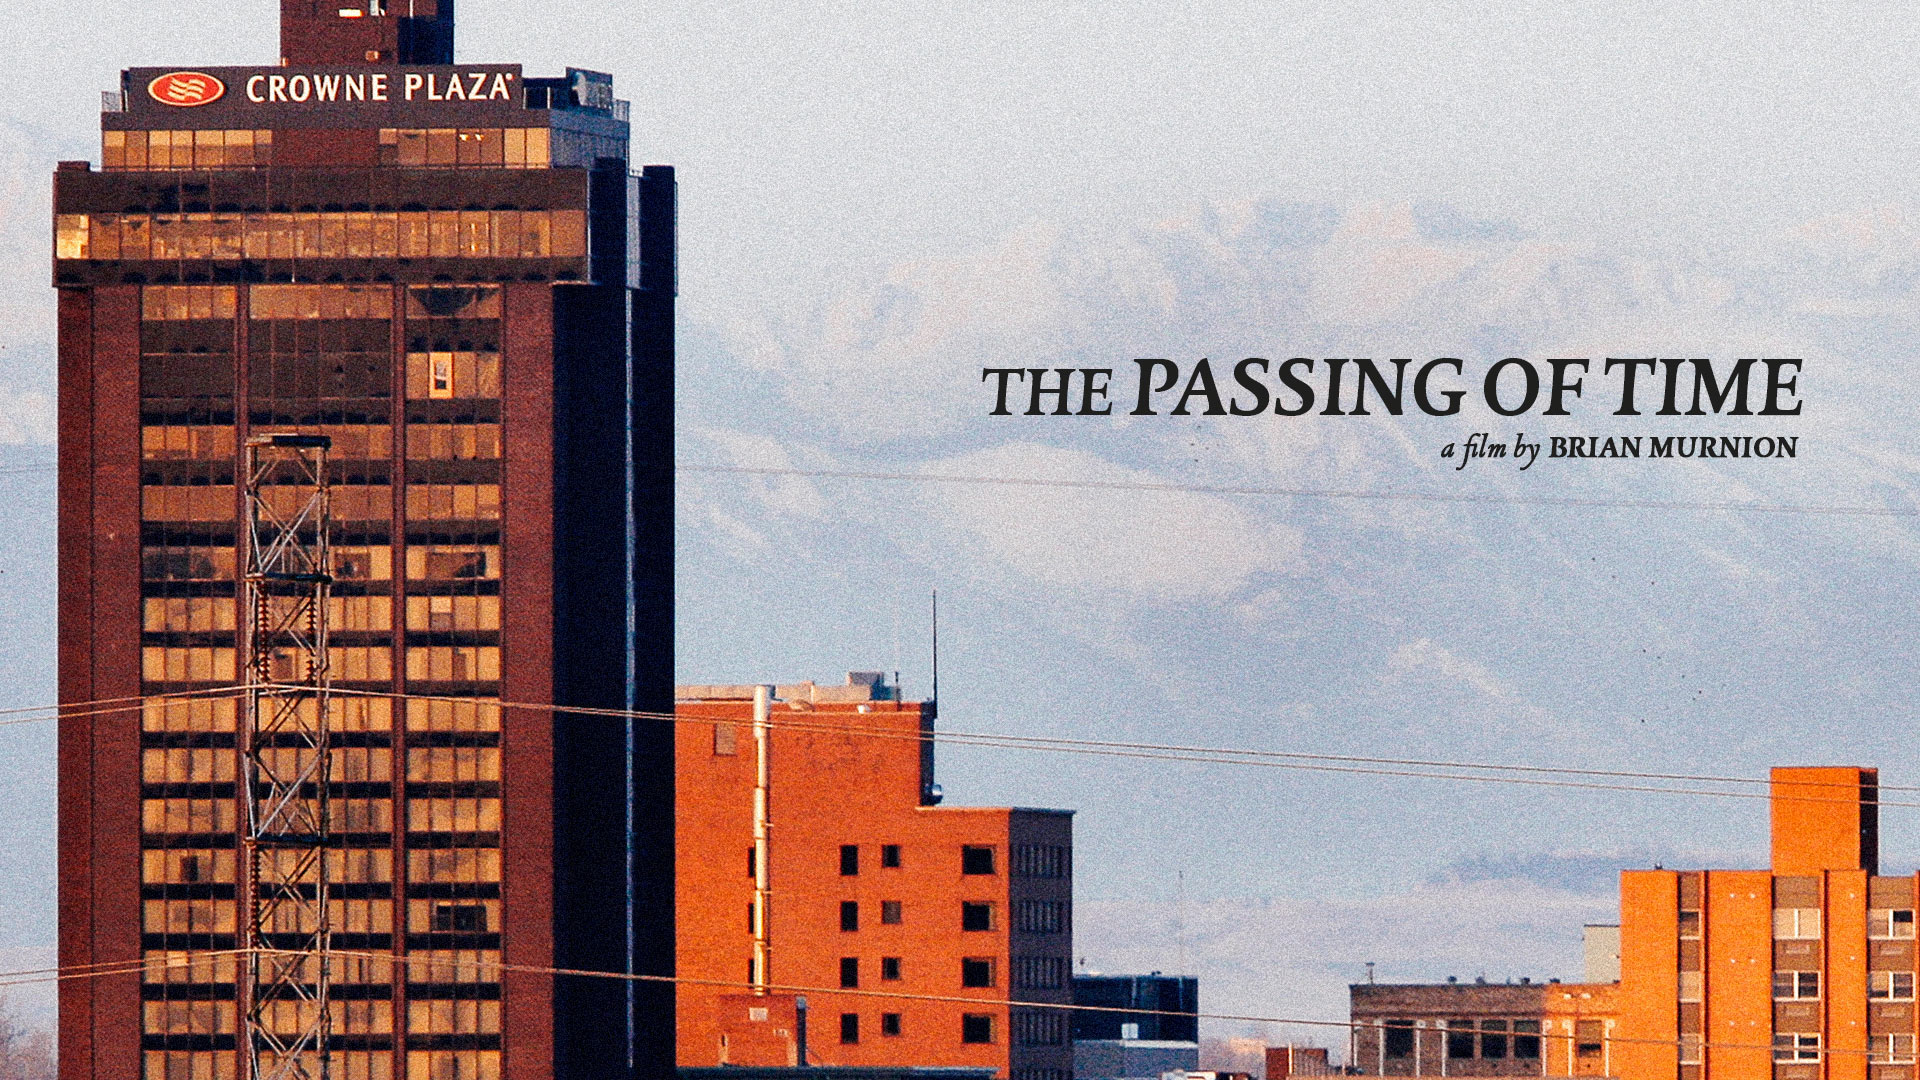 the passing of time teaser poster